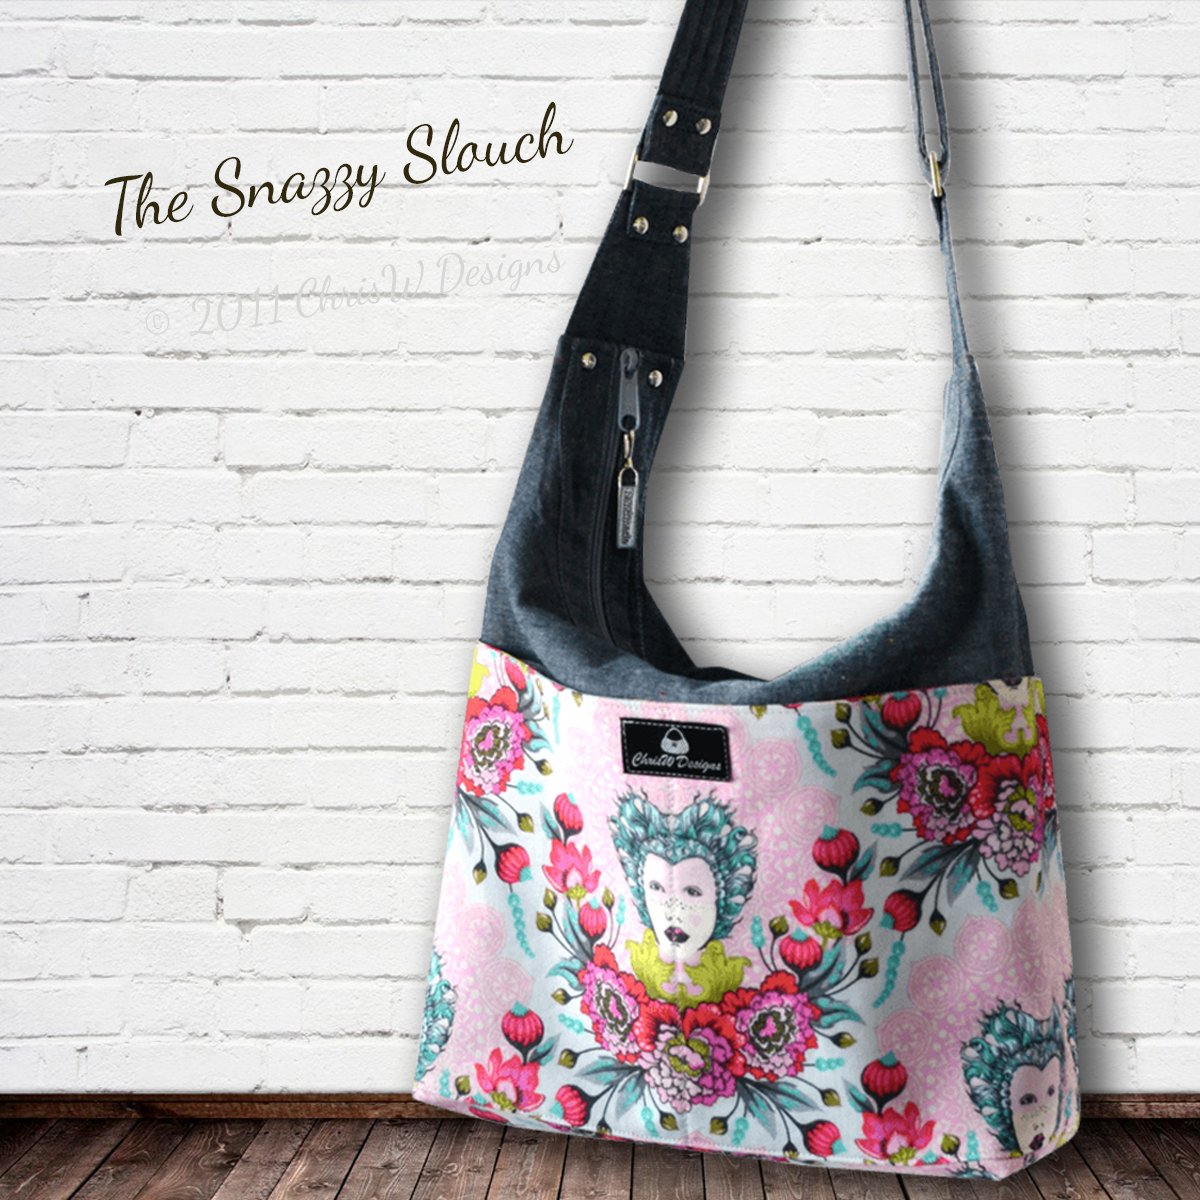 The Snazzy Slouch – A ChrisW Designs Designer Bag Sewing Pattern